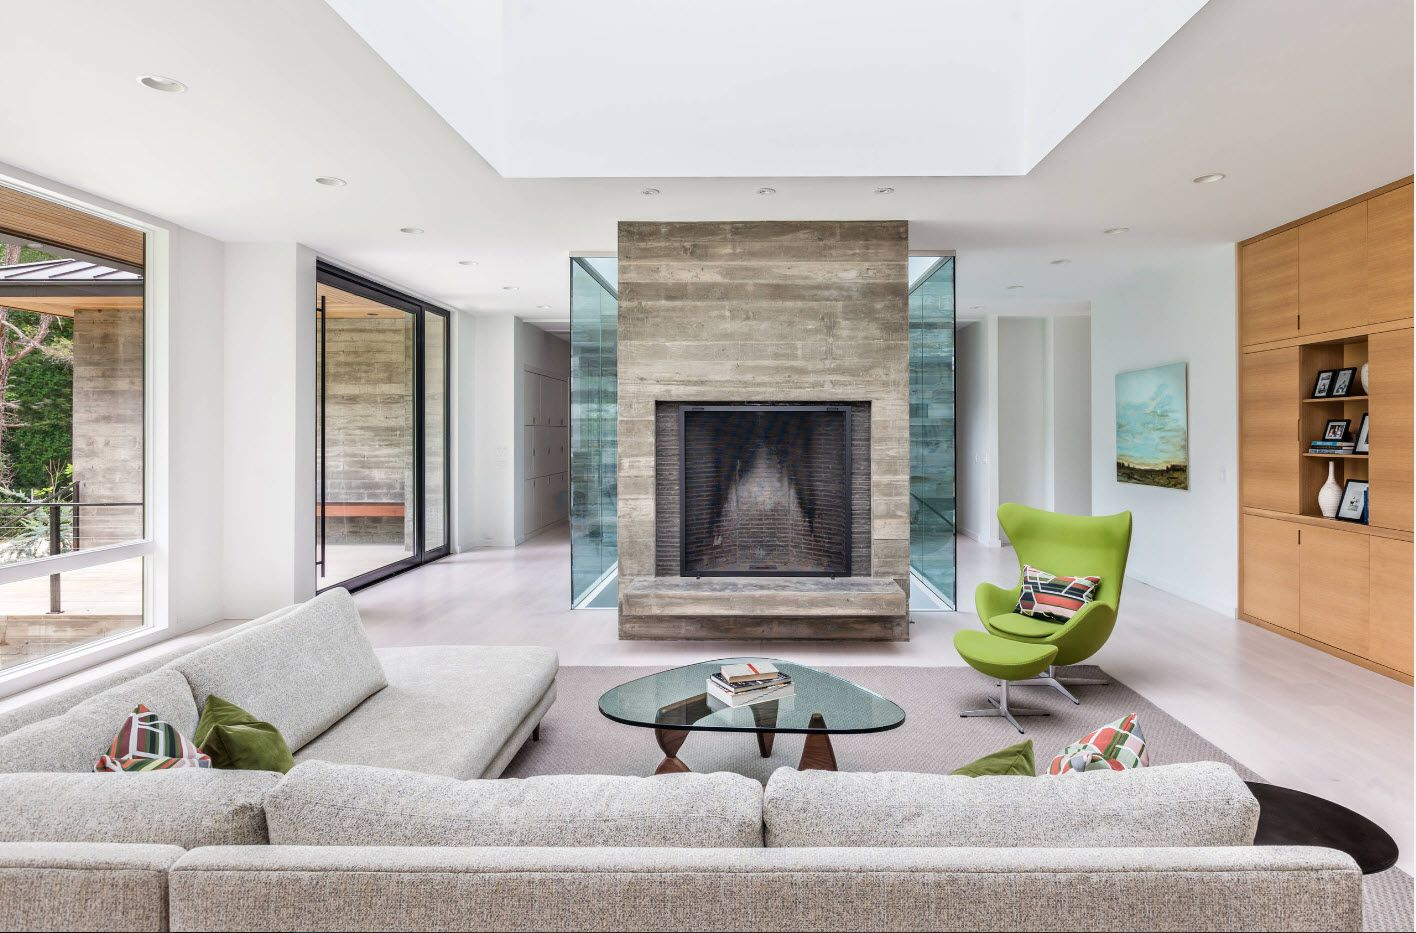 Stone cube accent of the fireplace